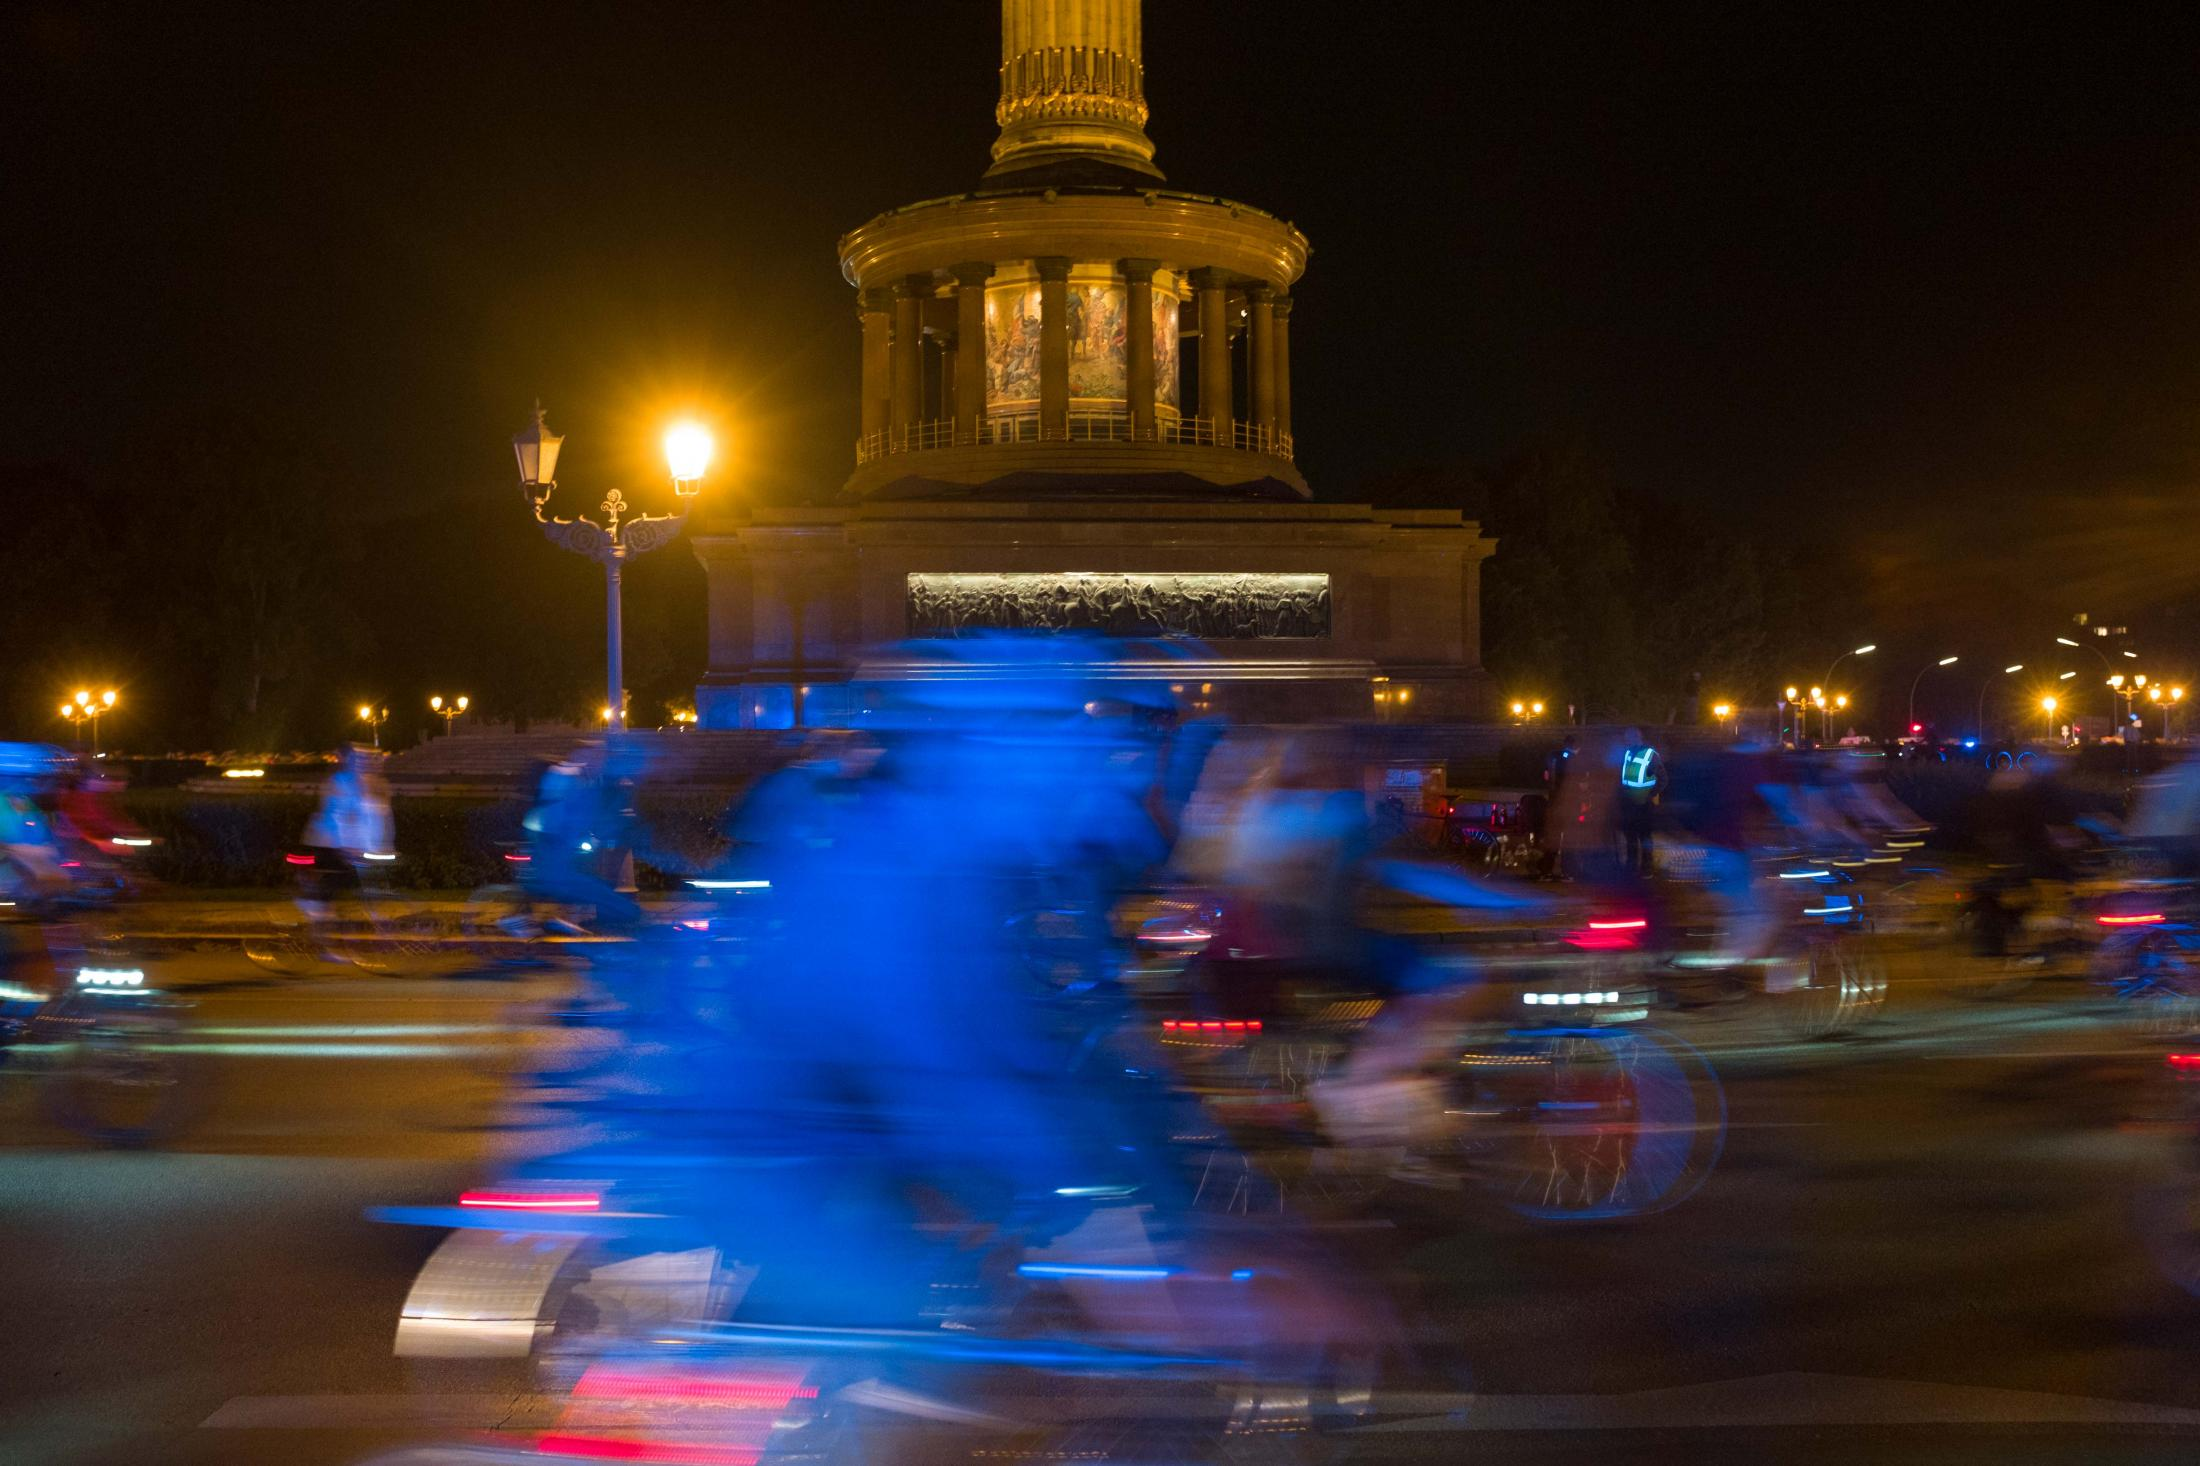 The blue light from police cars reflects off of participants of the monthly Critical Mass bike ride as it circles the Victoria column on Berlin's Großer Stern roundabout. Police presence is heavy all over the central parts of Berlin because of anti-government protests by a mixture of Corona deniers and neo-nazis. Berlin, August 28, 2020.